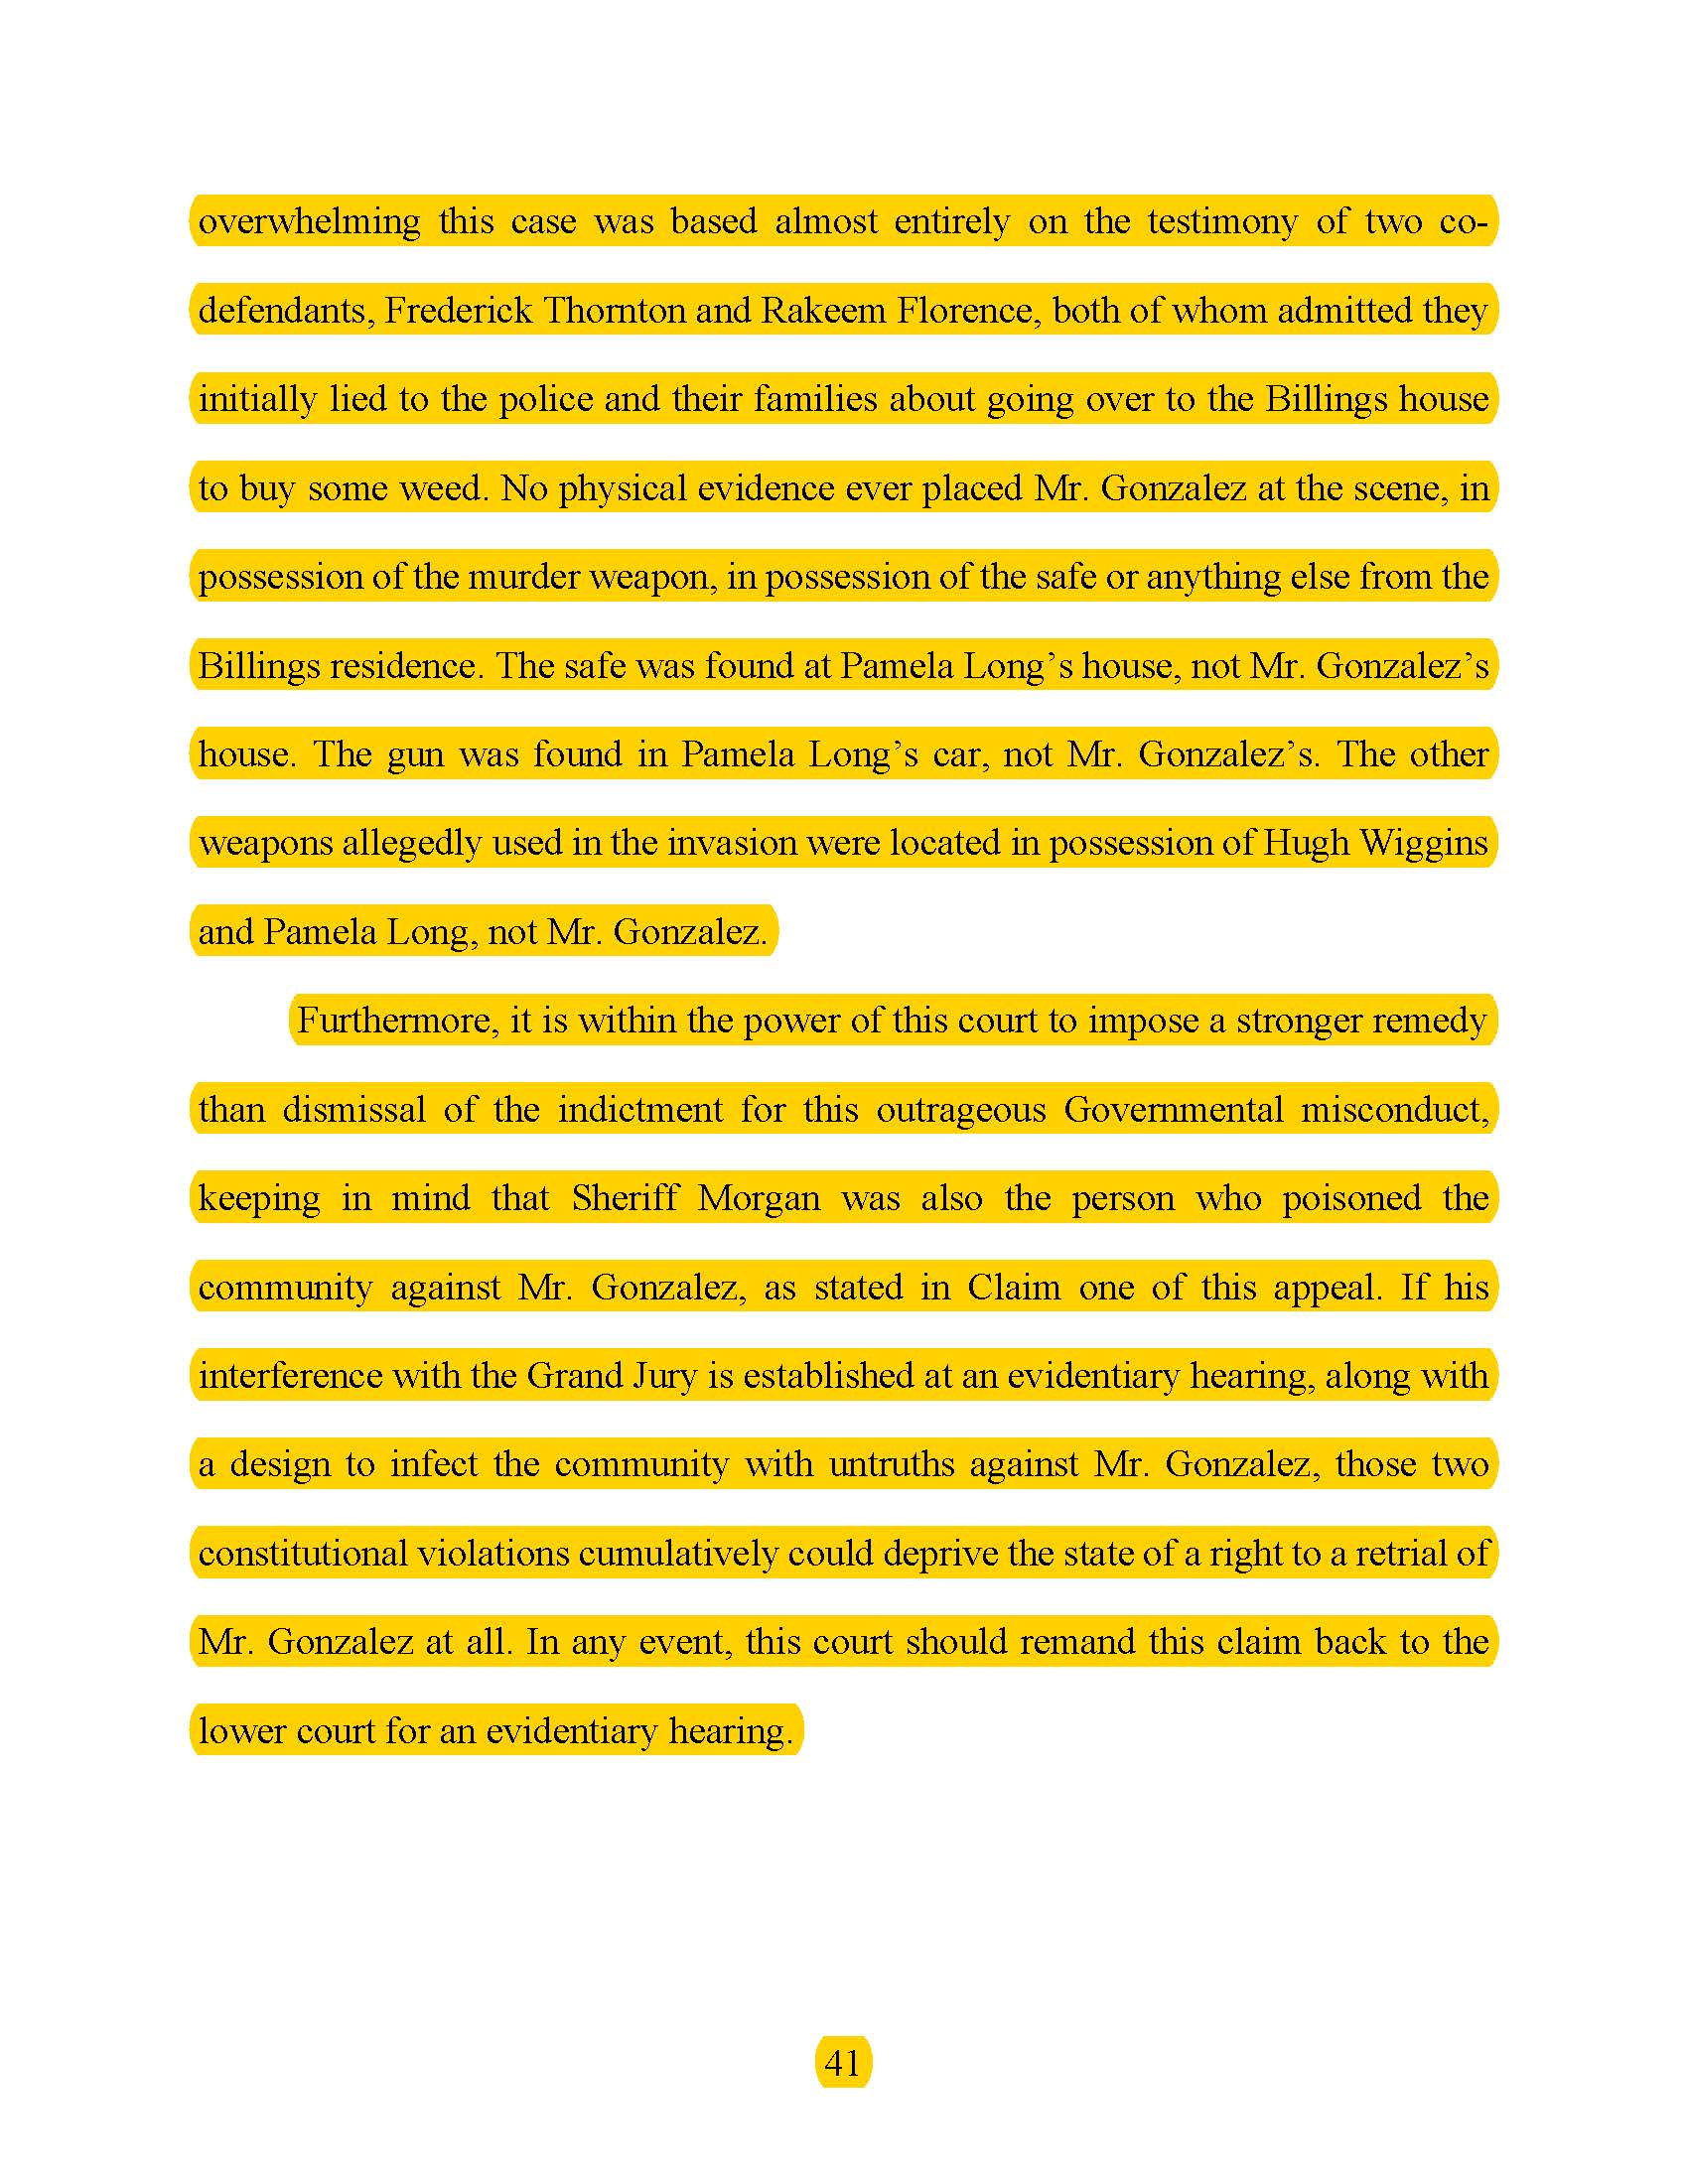 pat appeal brief_Page_44